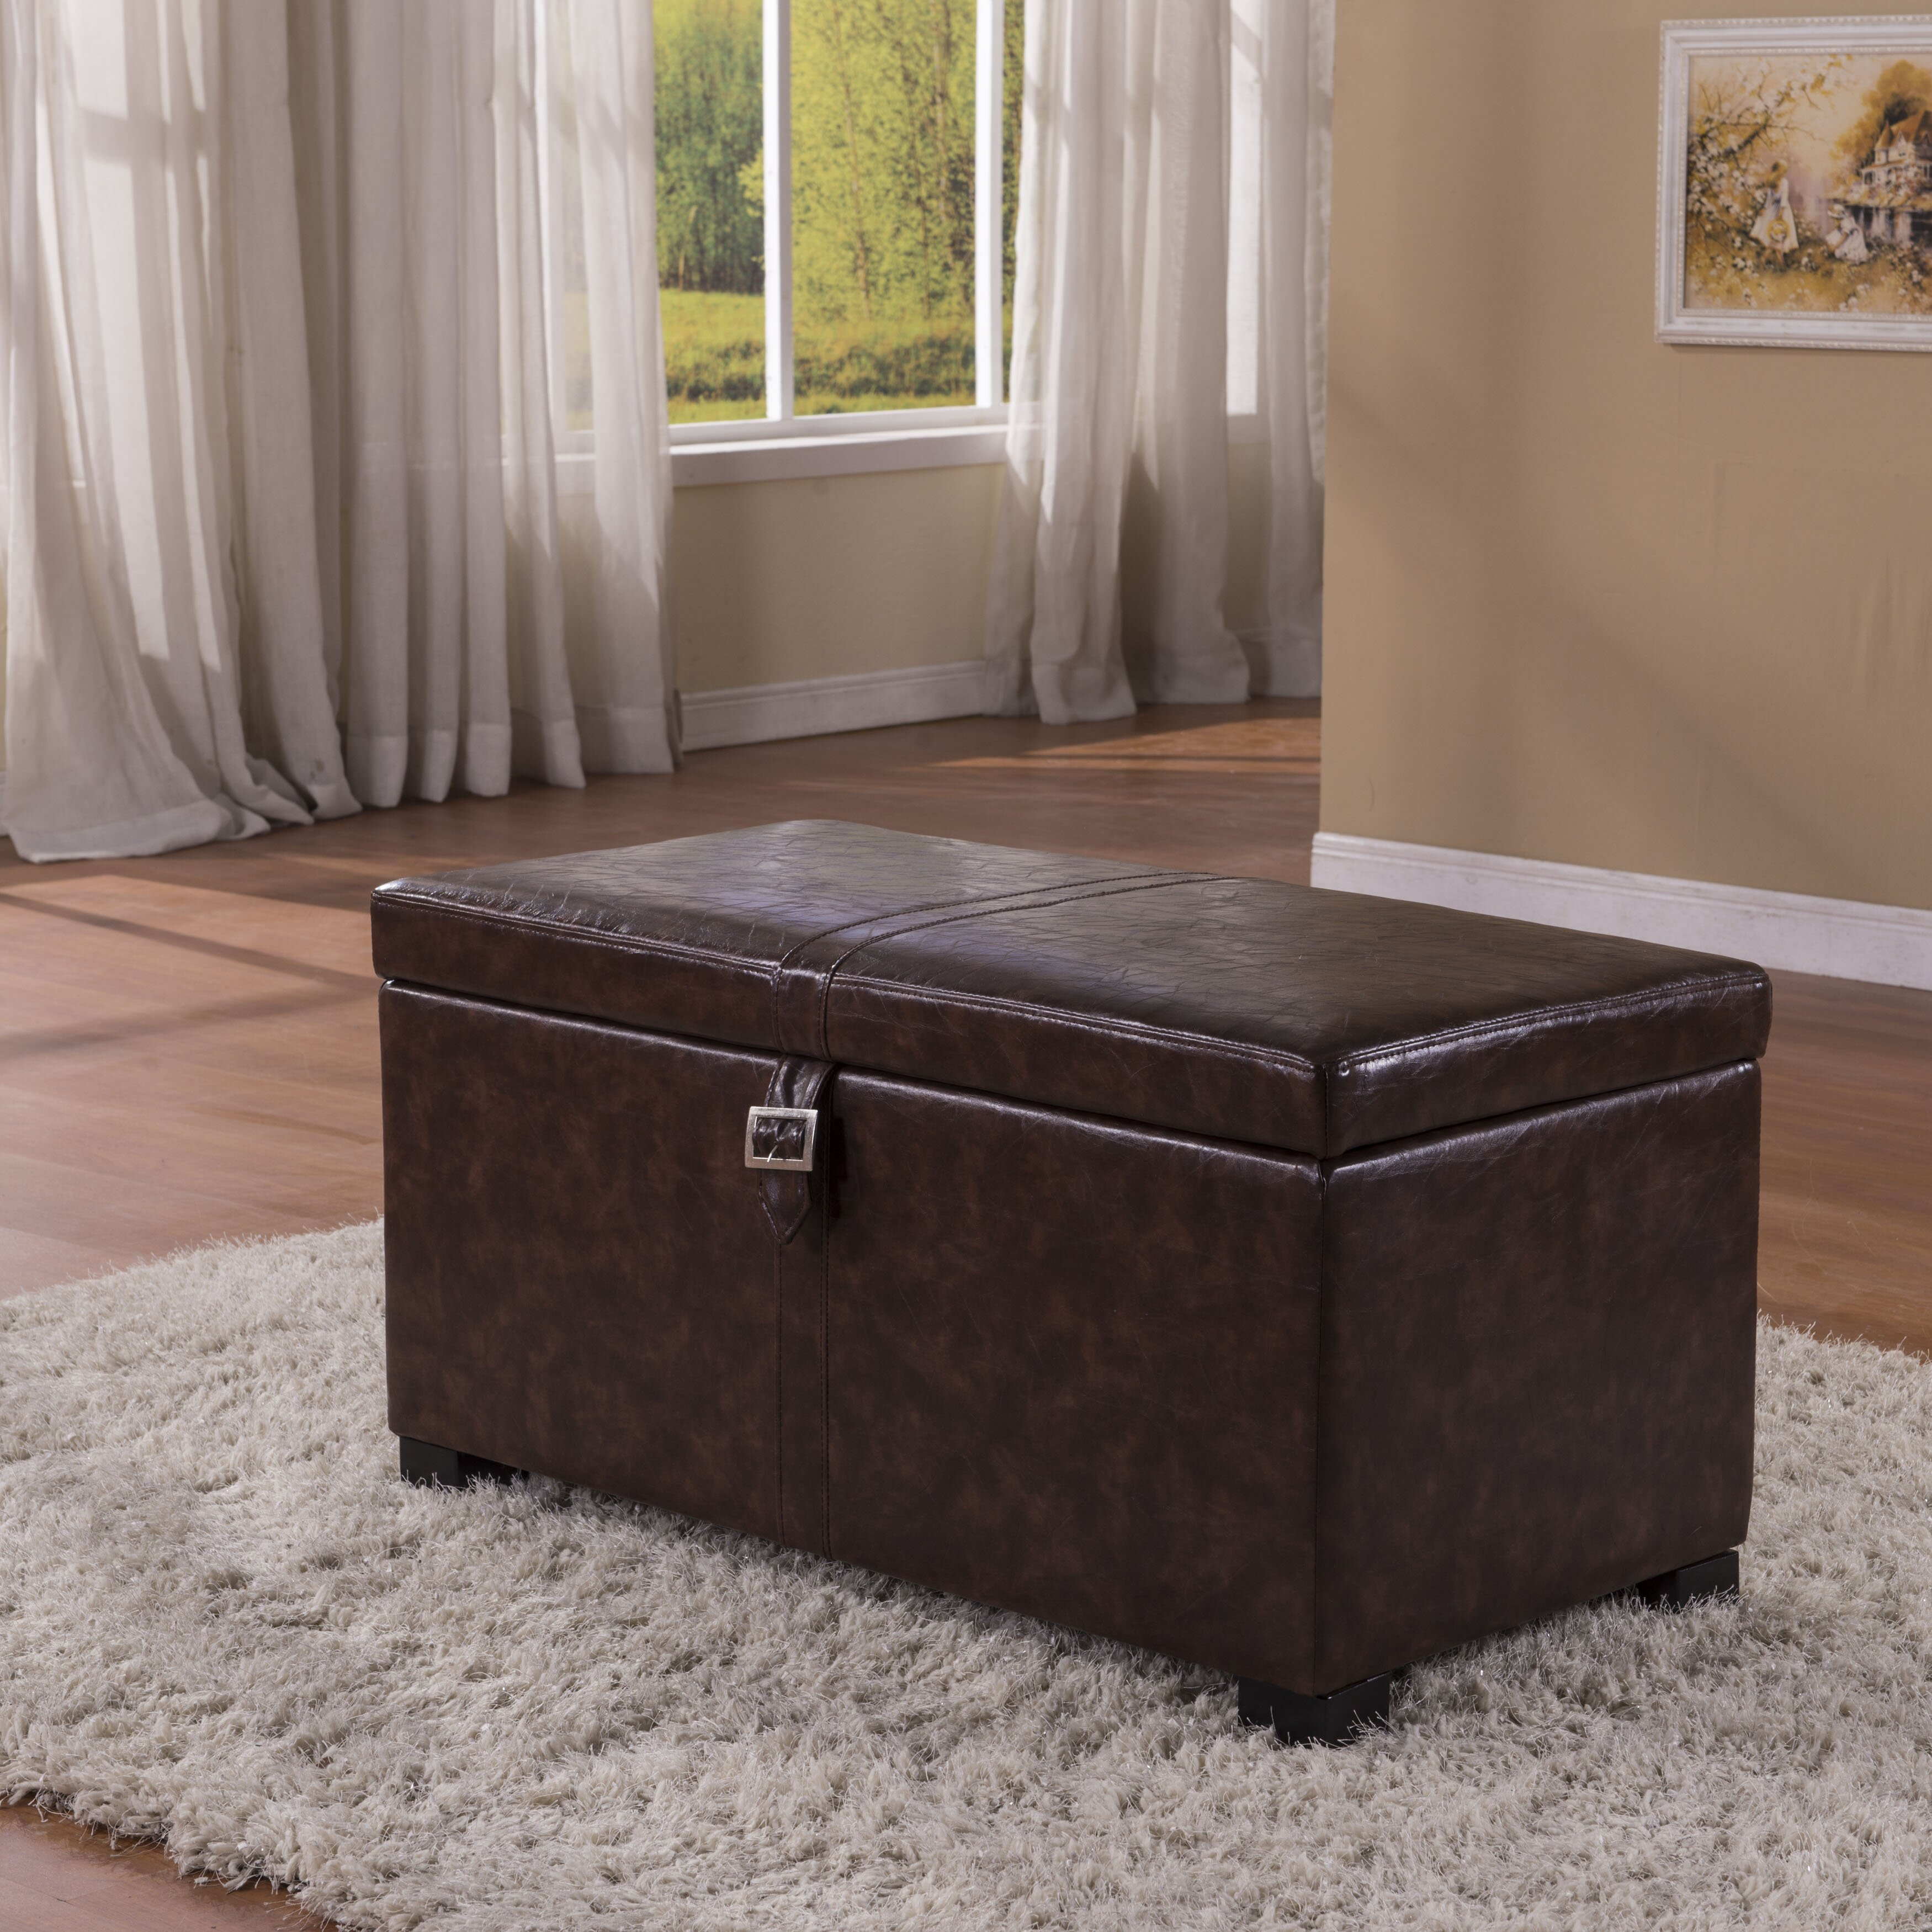 darby home co dail storage bedroom bench reviews wayfair